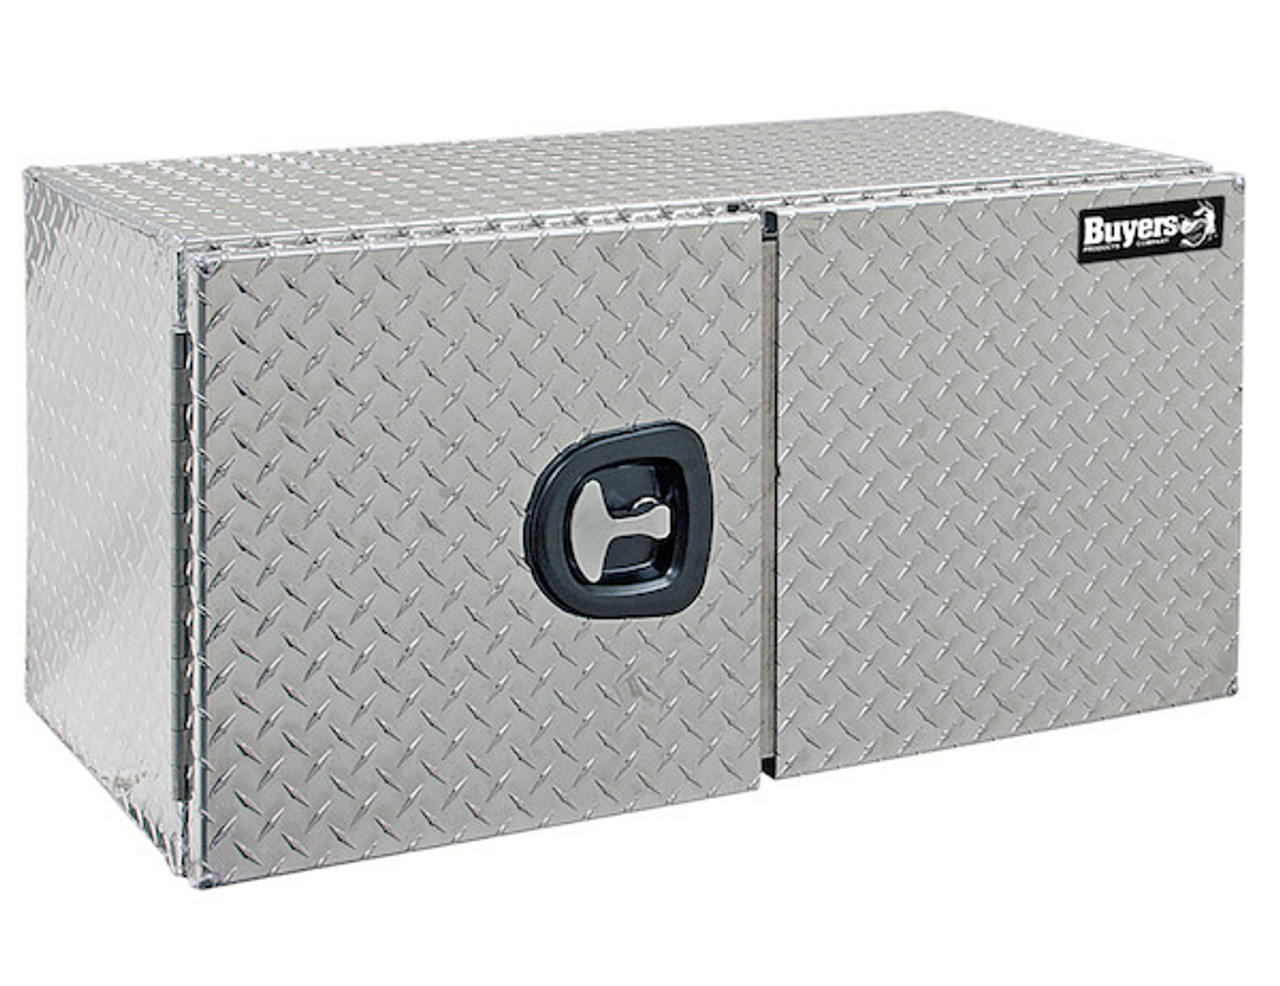 "1702250 BUYERS PRODUCTS DIAMOND TREAD ALUMINUM UNDERBODY TRUCK TOOLBOX WITH BARN DOOR 24""HX24""DX60""W"